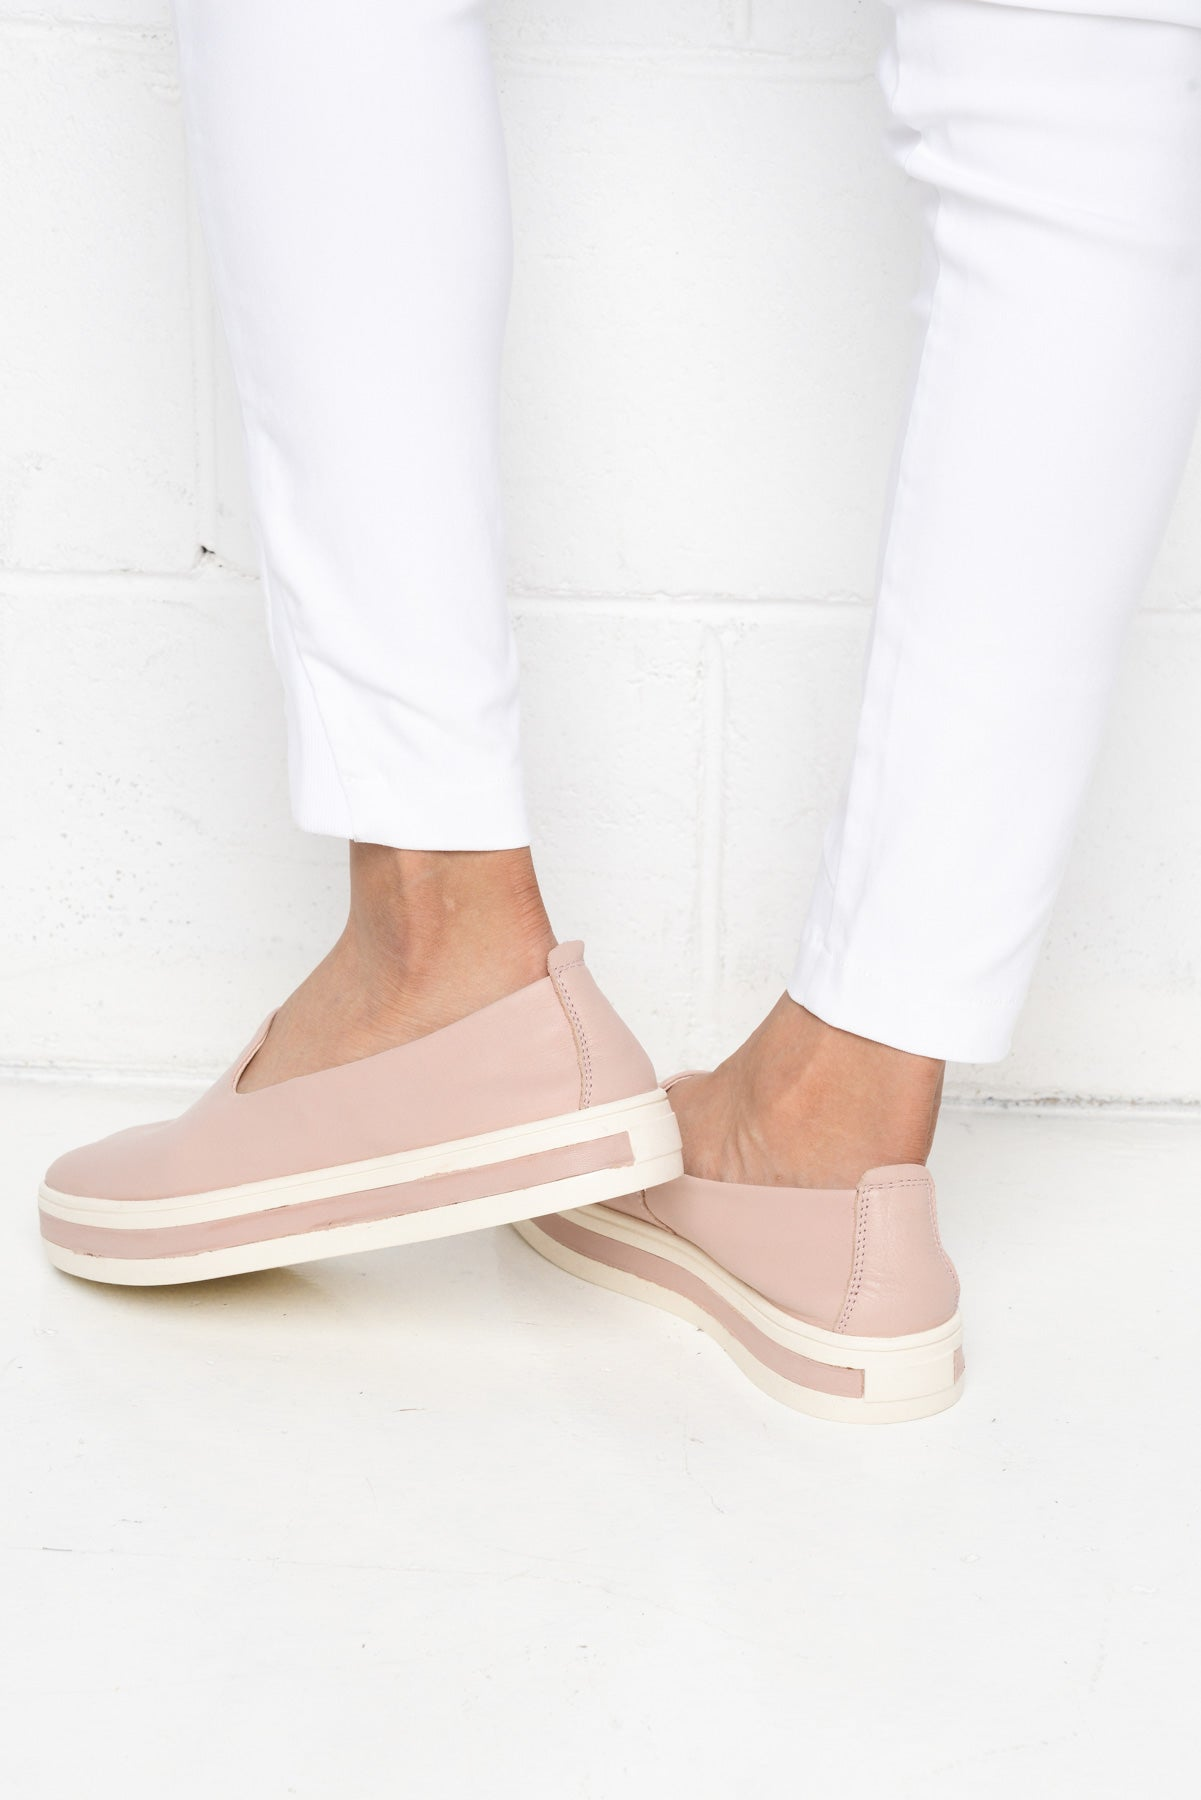 Paris Blush Platform Leather Shoe - Blue Bungalow